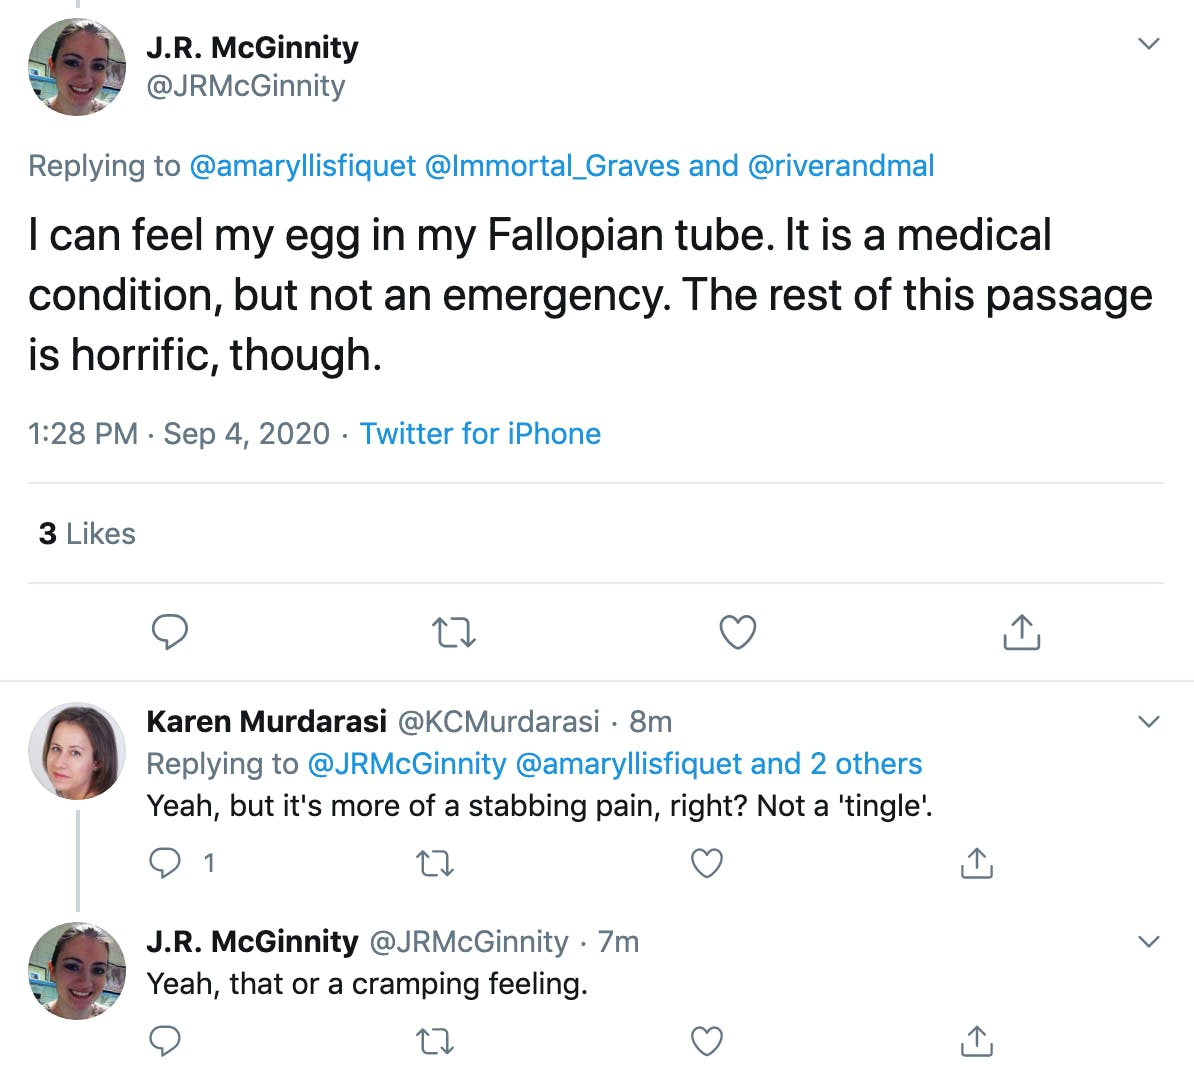 """@JRMcGinnity """"I can feel my egg in my Fallopian tube. It is a medical condition, but not an emergency. The rest of this passage is horrific, though.""""  @KCMurdarasi """"Yeah, but it's more of a stabbing pain, right? Not a 'tingle'.""""  @JRMcGinnity  """"Yeah, that or a cramping feeling."""""""